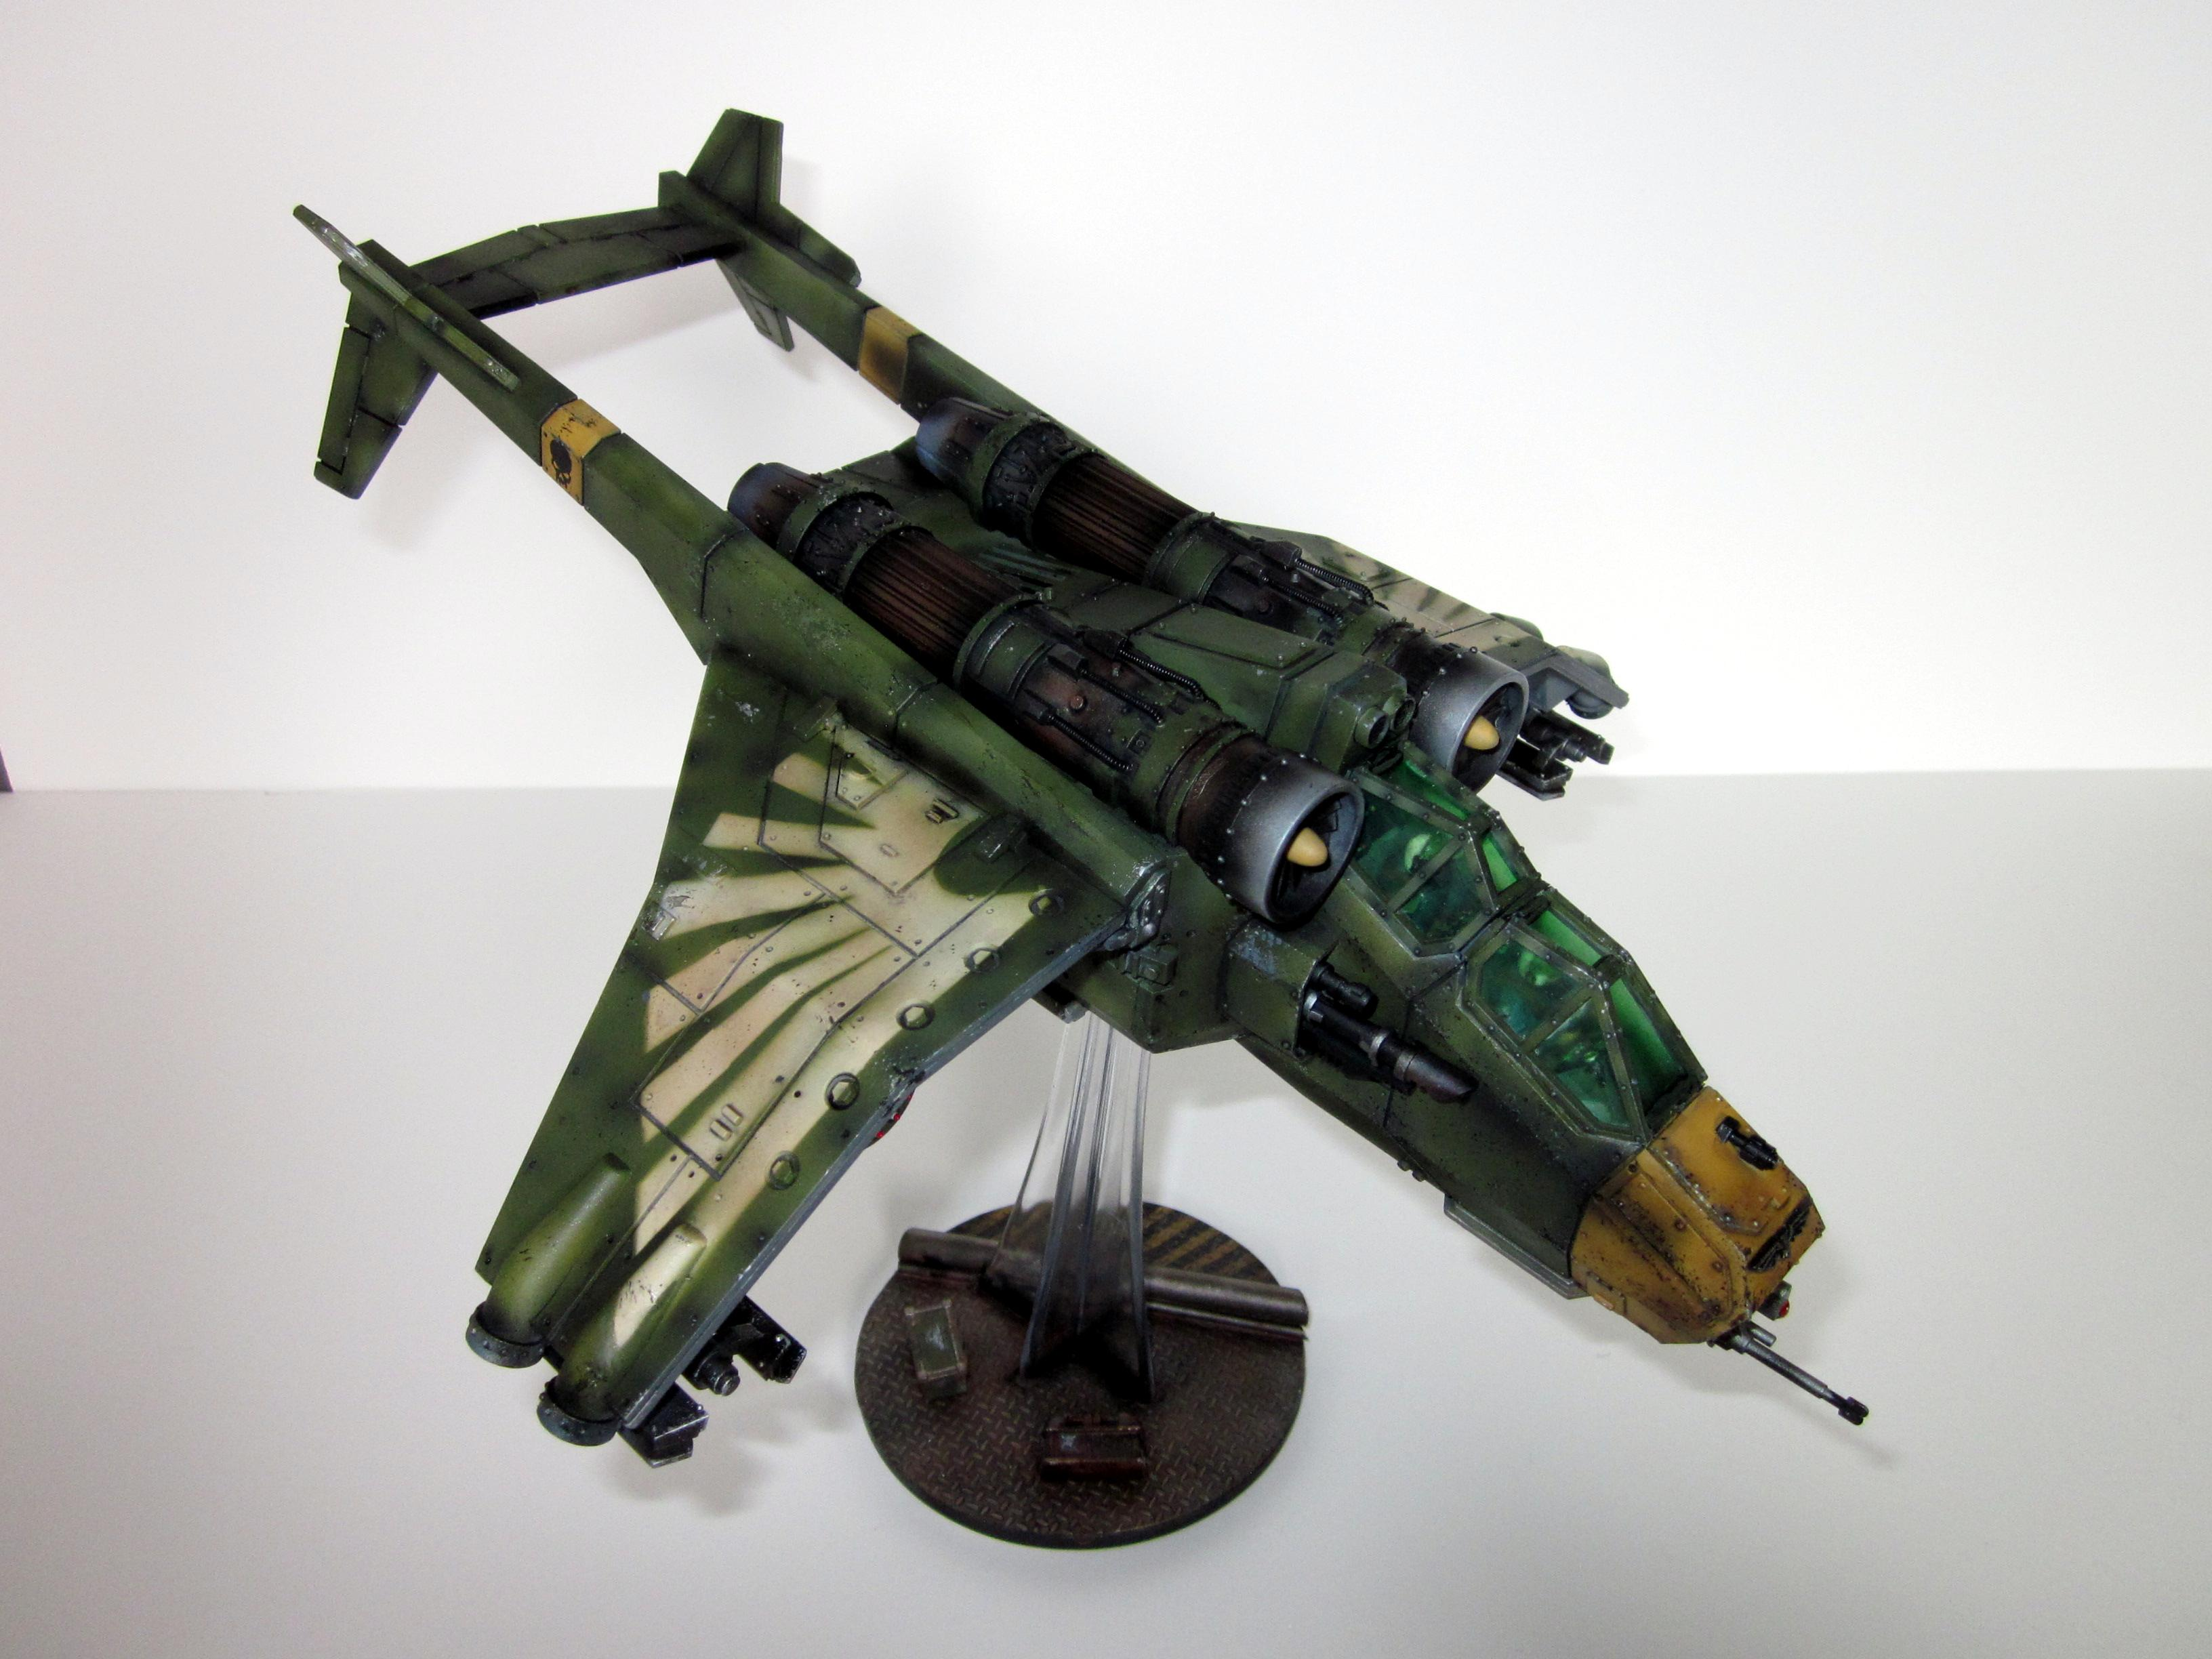 Cadians, Imperial Guard, Valkyrie